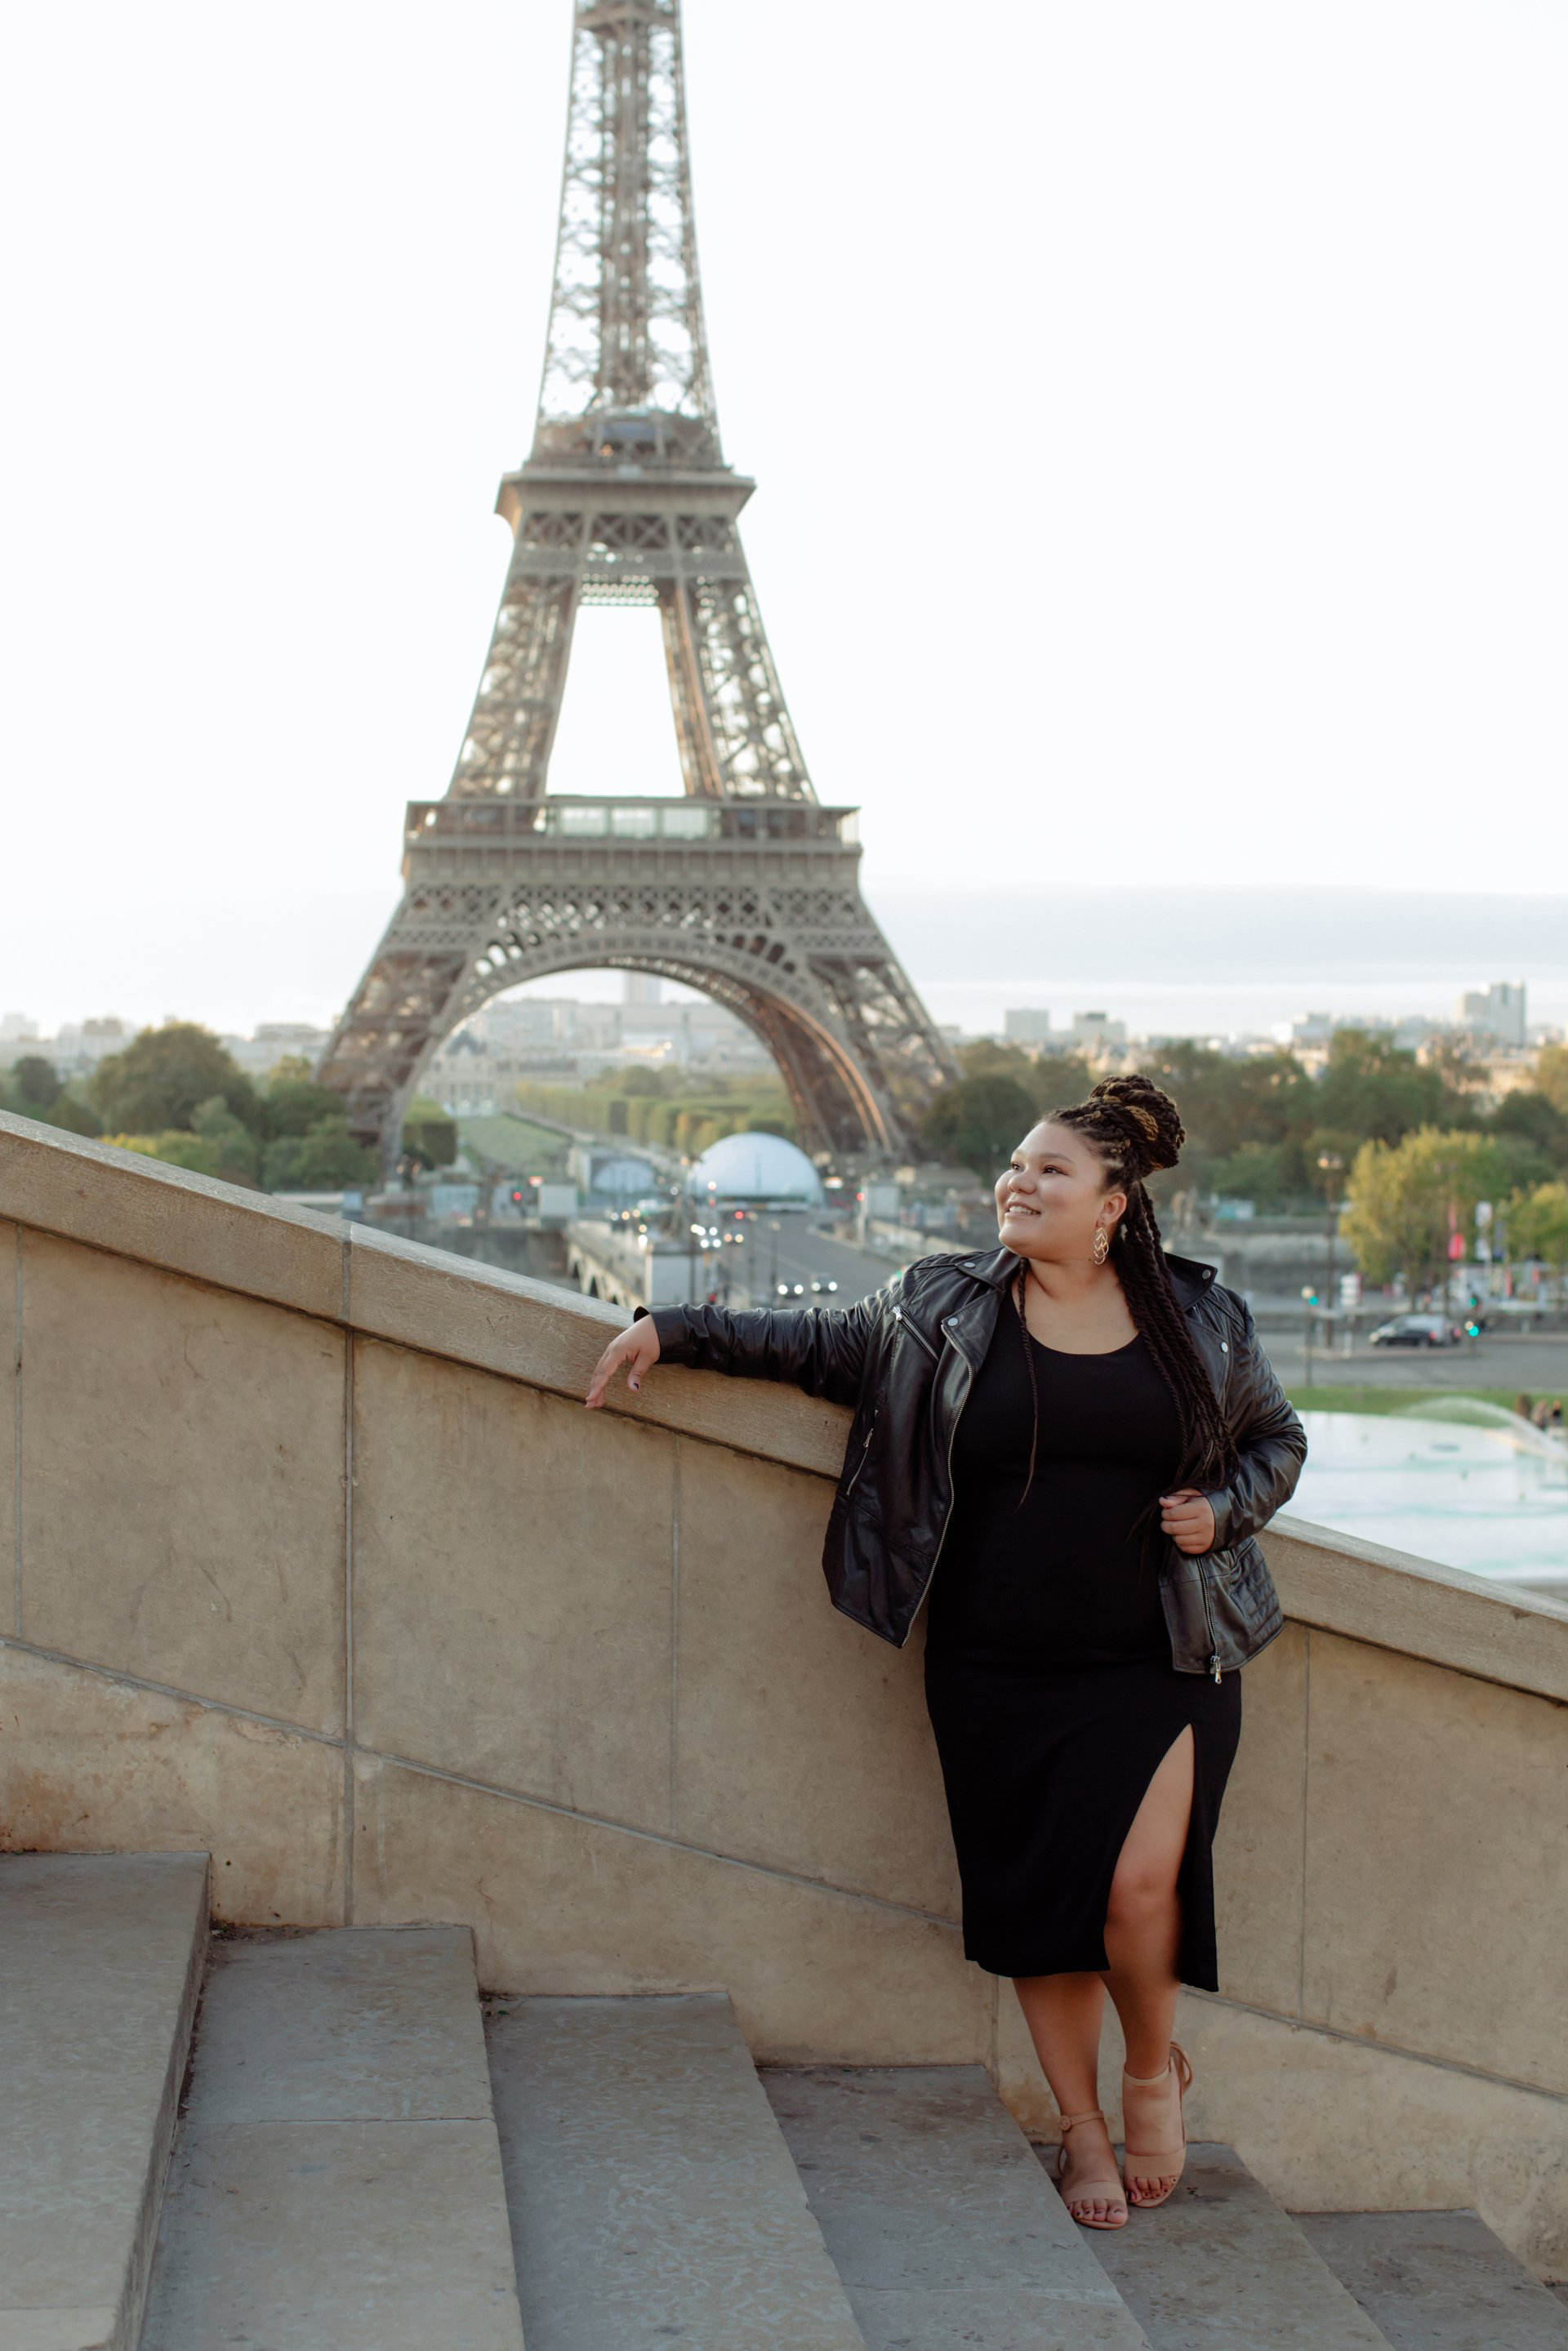 Flytographer Travel Story - Solo in Paris